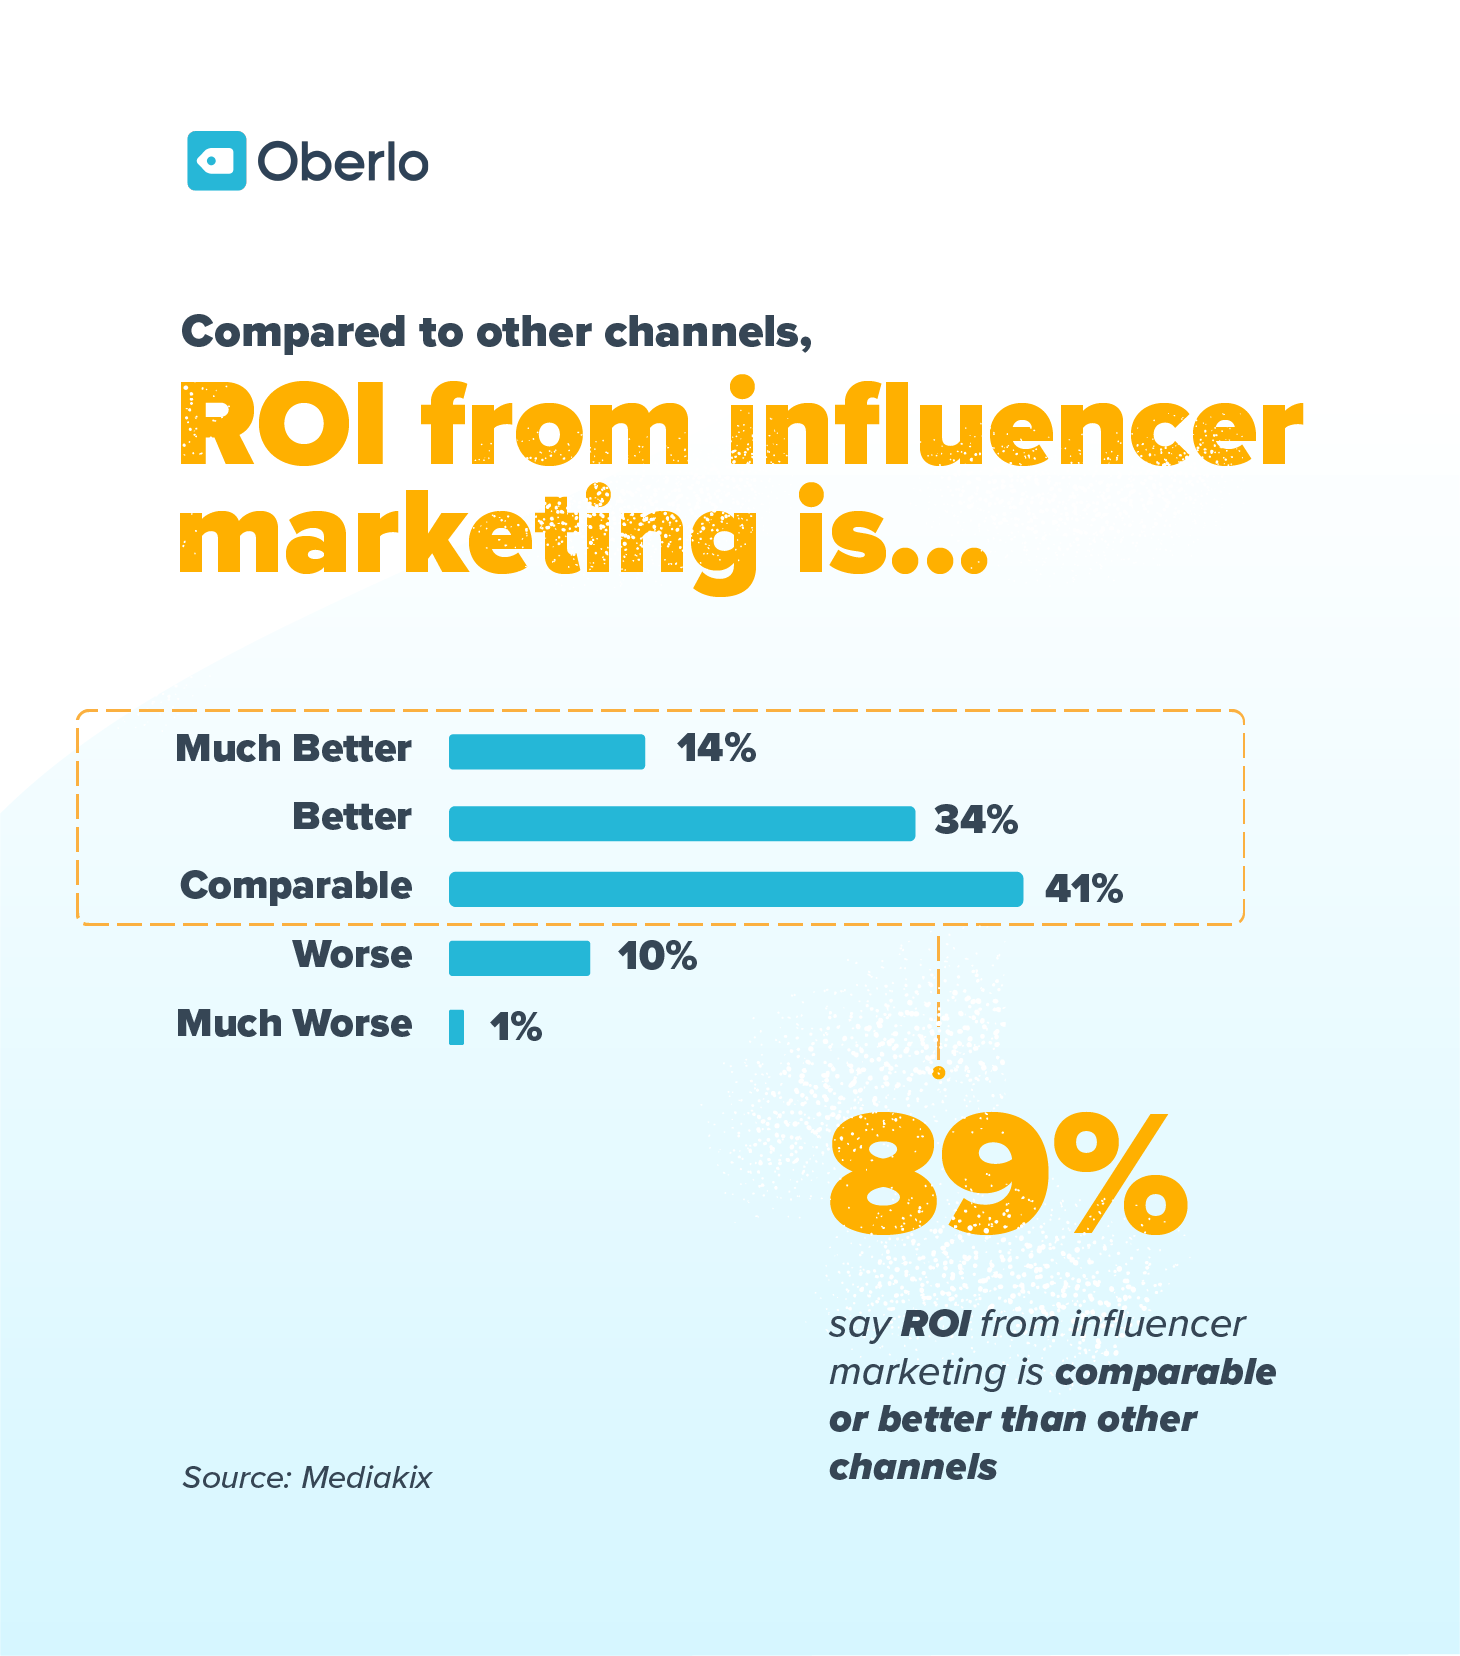 Infographic showing statistics about the return on investment of influencer marketing